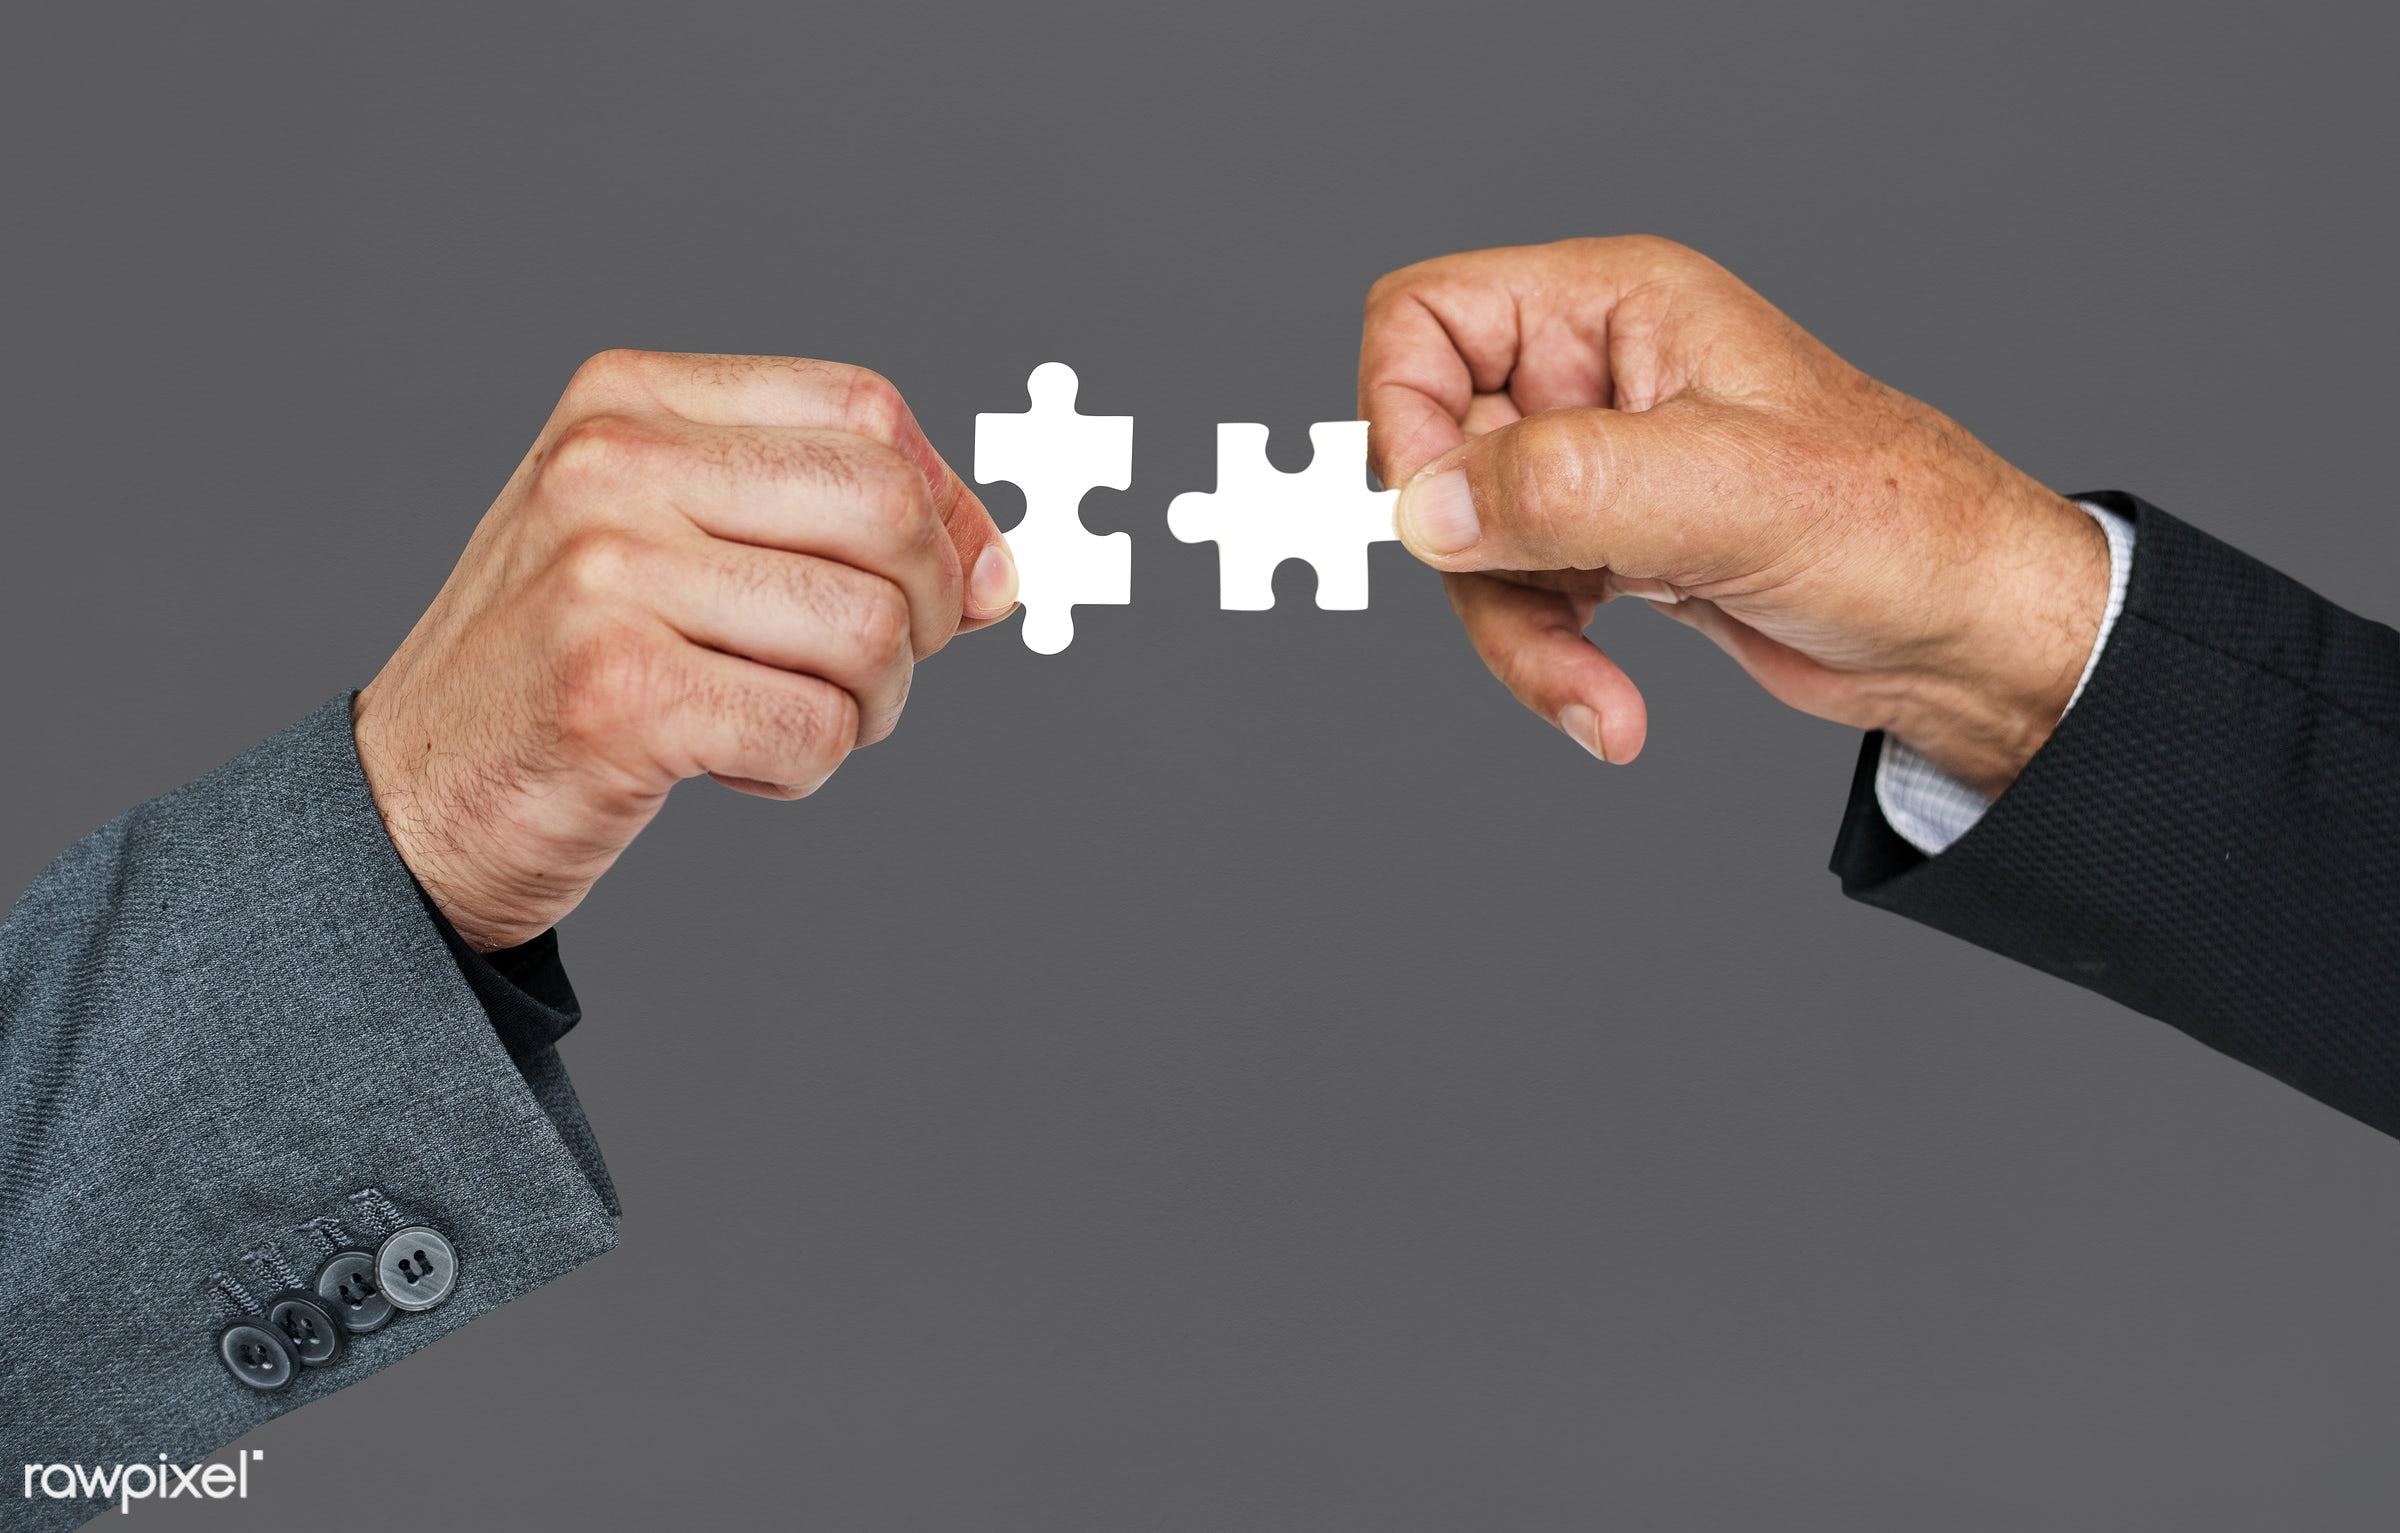 studio, jigsaw, jigsaw puzzle, holding, business, hand, corporate business, teamwork, action, cooperation, grey, motion,...